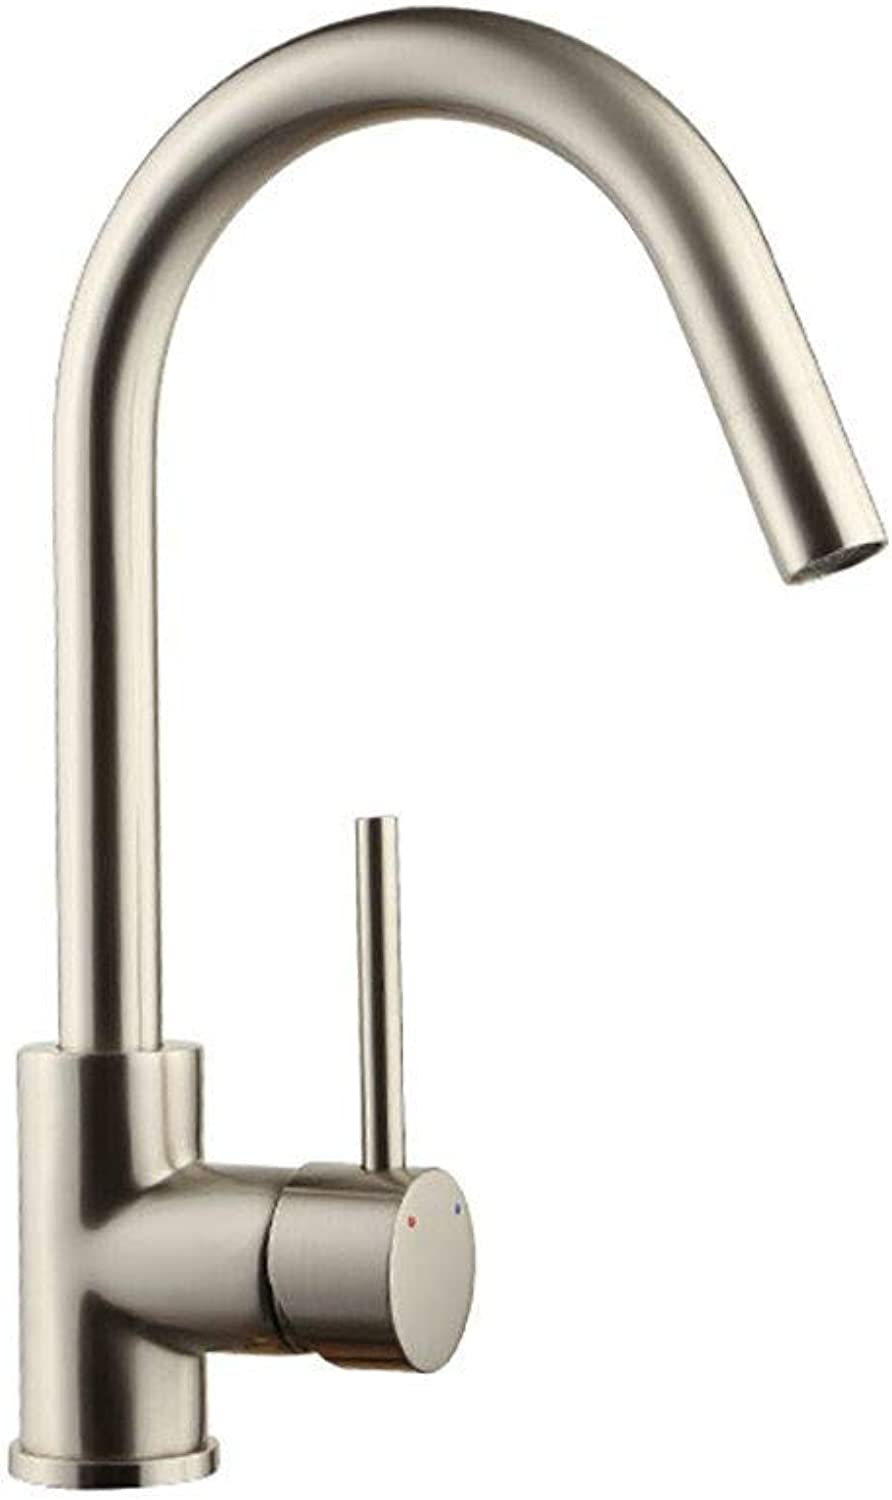 Water Taphot and Cold Modern Taps Kitchen Brass Faucet Bathroom Sink Basin Waterfall Tap Mixer Water Washroom Bath Tub Shower